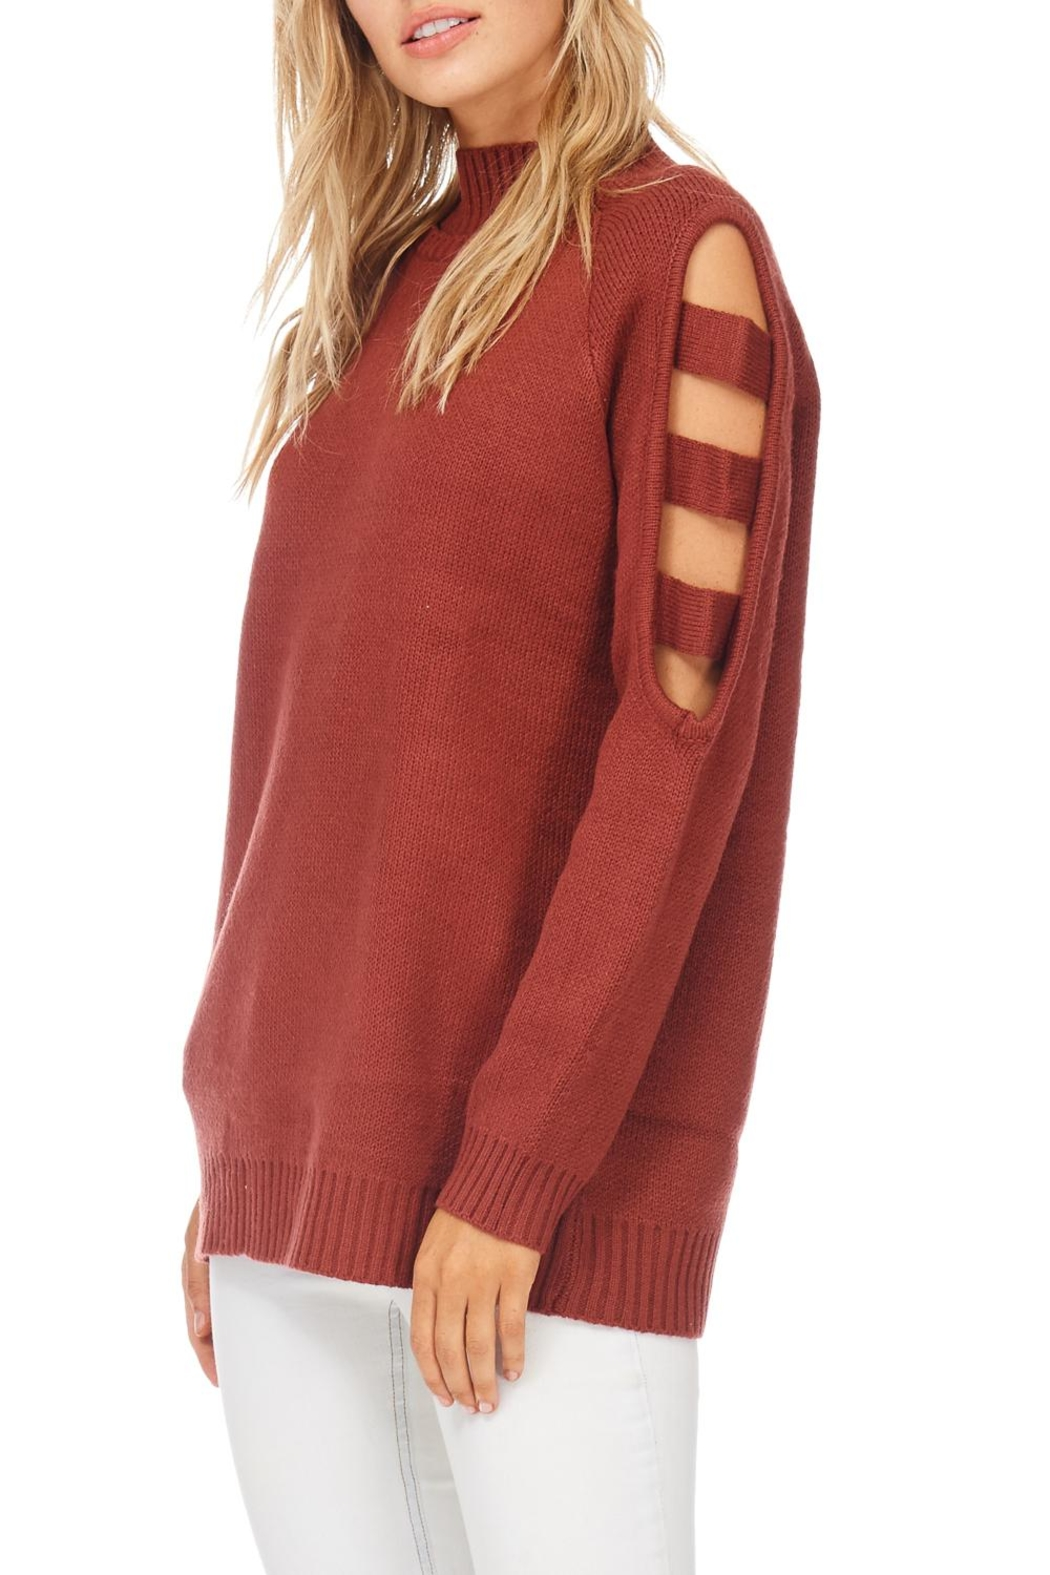 LoveRiche Brick Cut-Out Sweater - Main Image